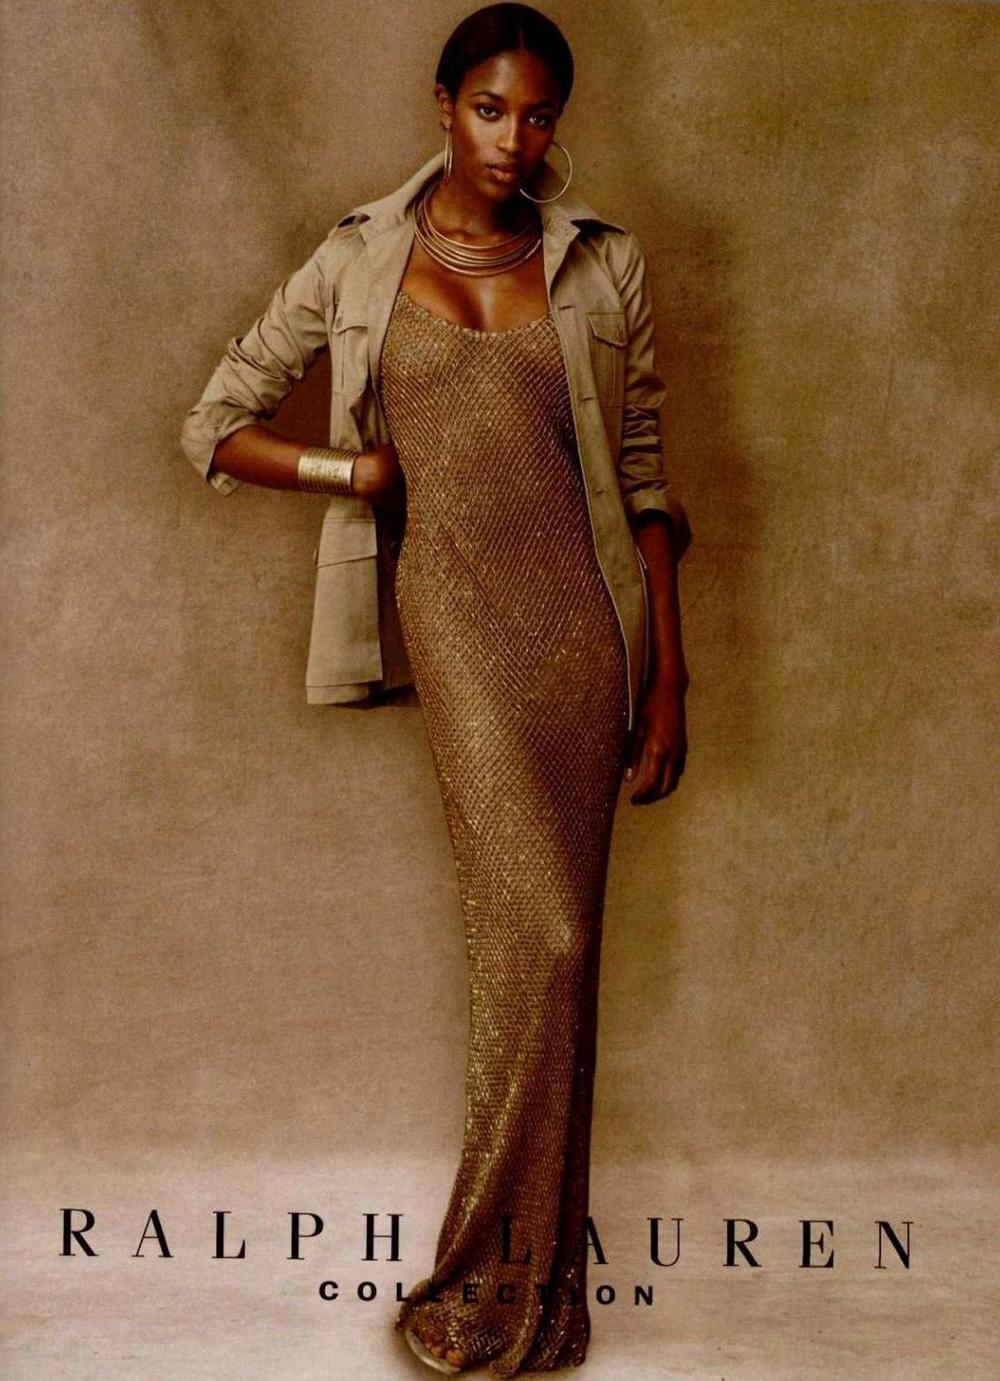 ralph-lauren-collection-spring-1997-advertisement-naomi-campbell-4.jpg